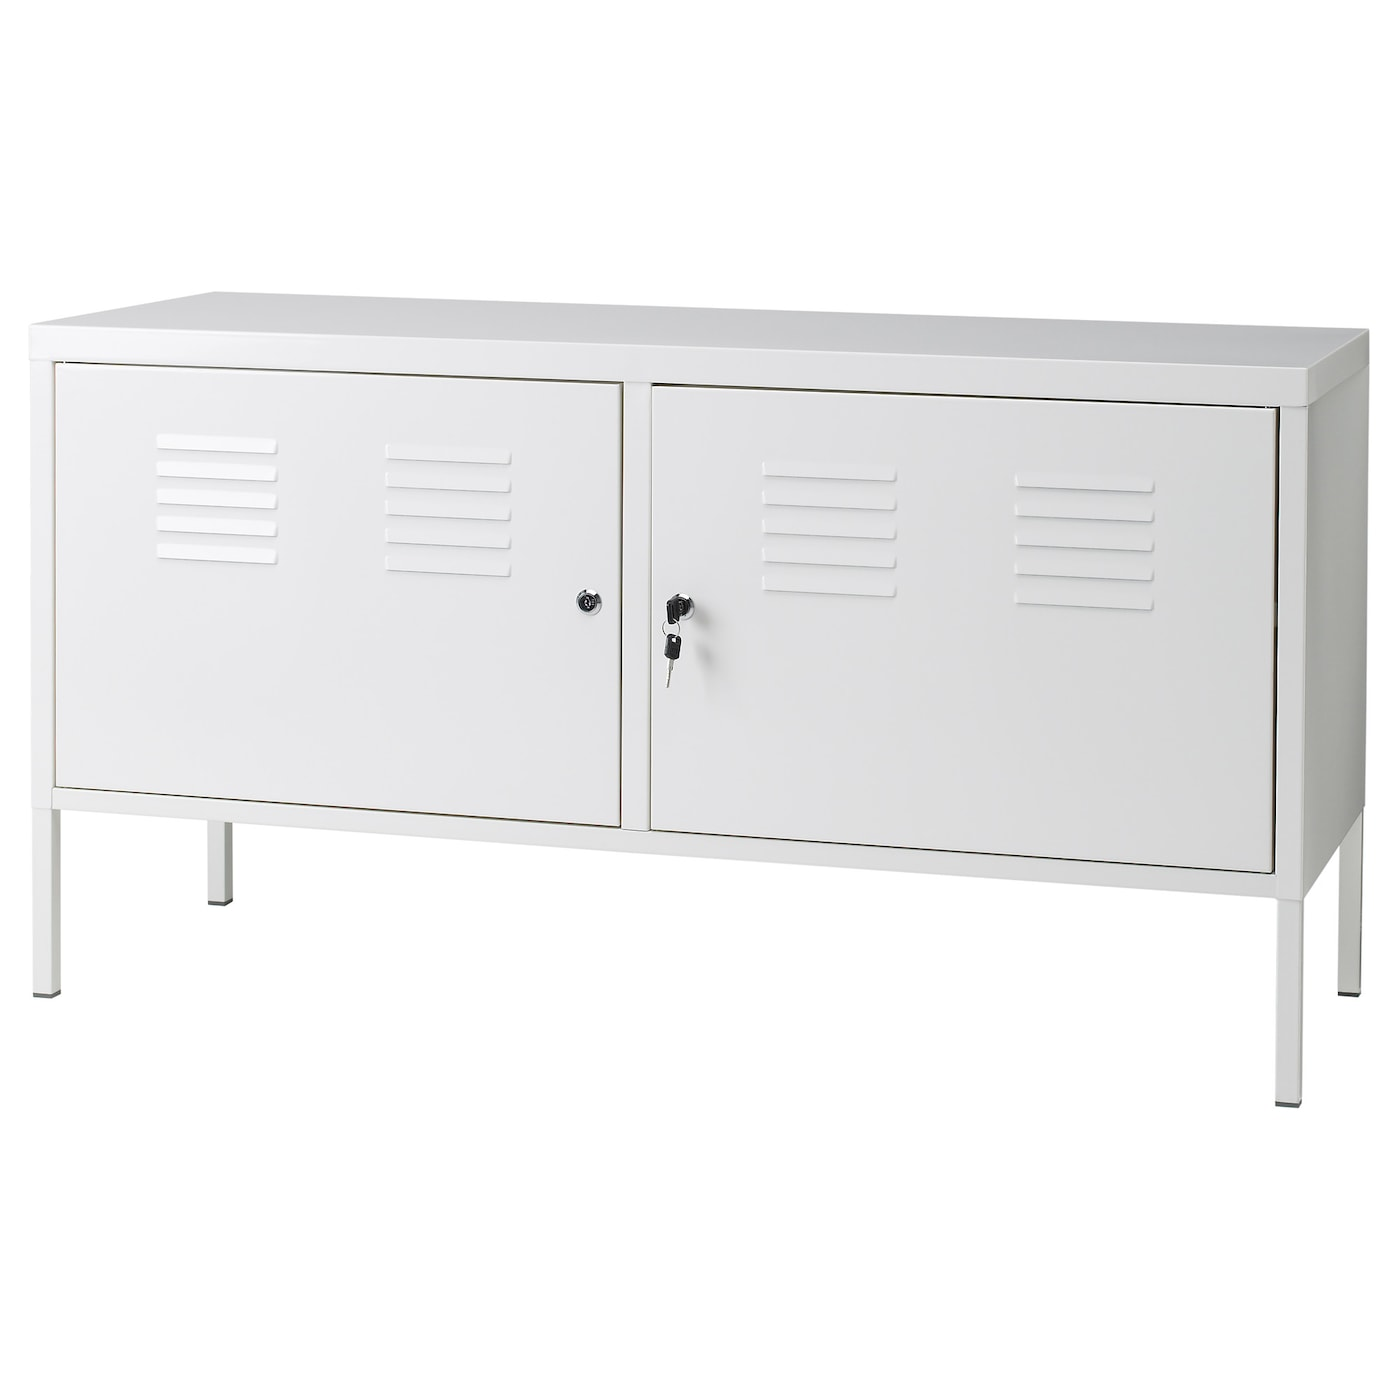 ikea ps cabinet white 119x63 cm ikea. Black Bedroom Furniture Sets. Home Design Ideas